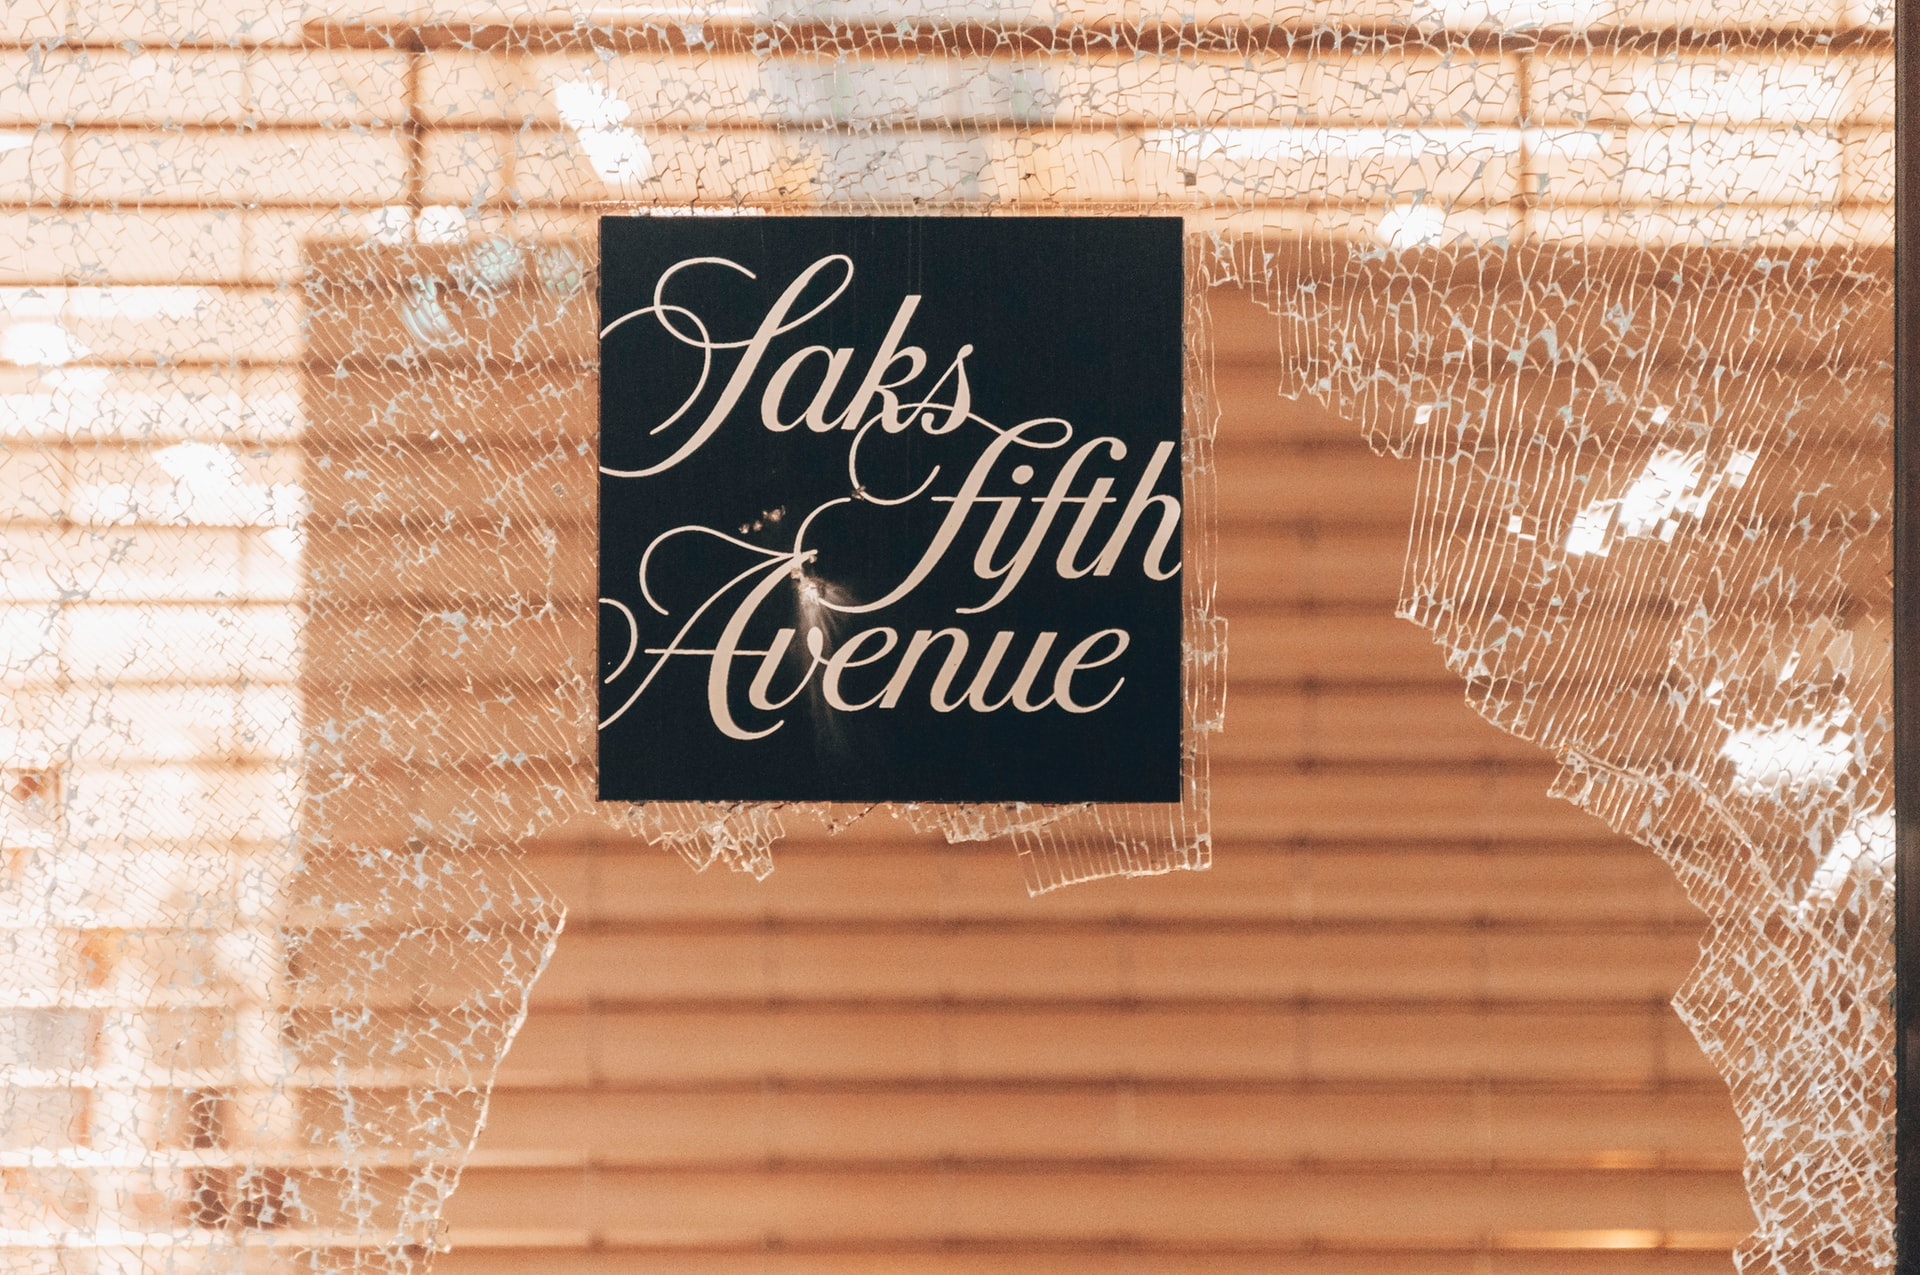 arizona looting laws - saks fifth avenue